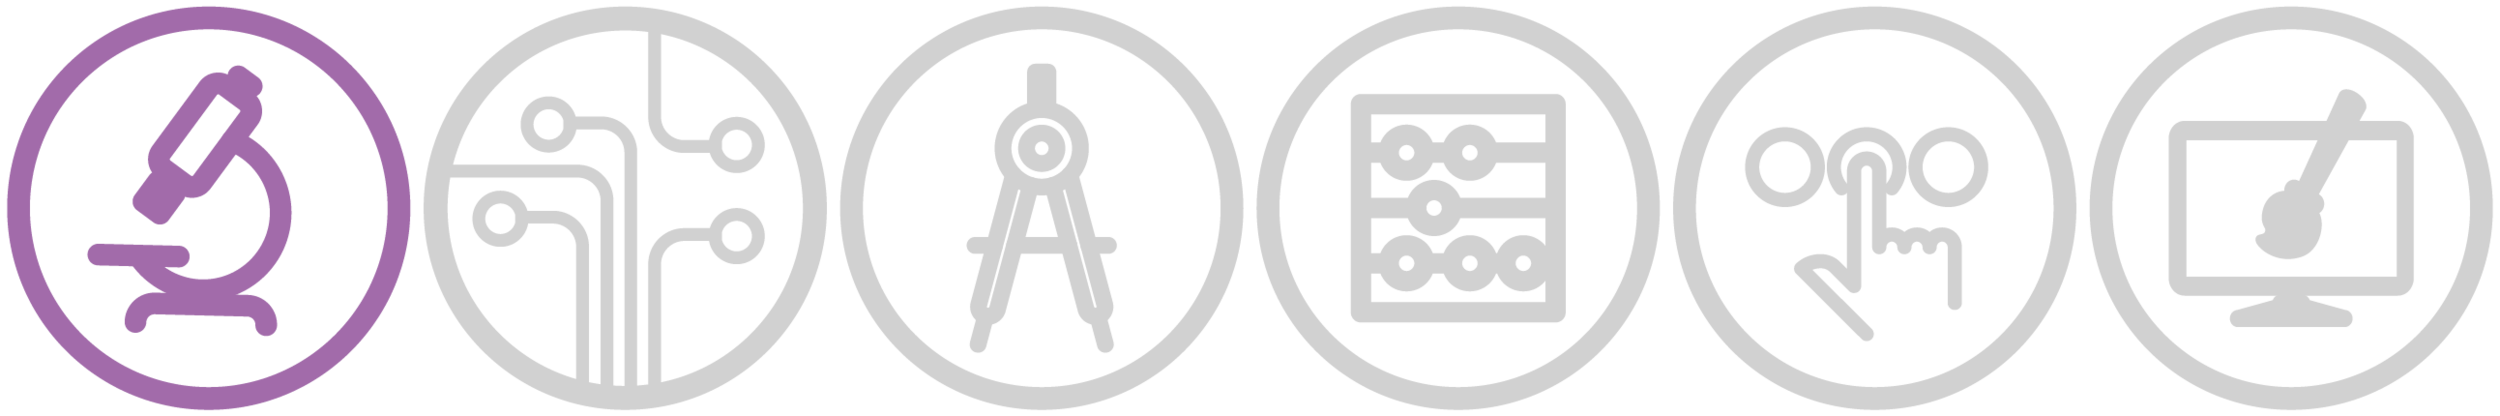 Polution Solution icons.png